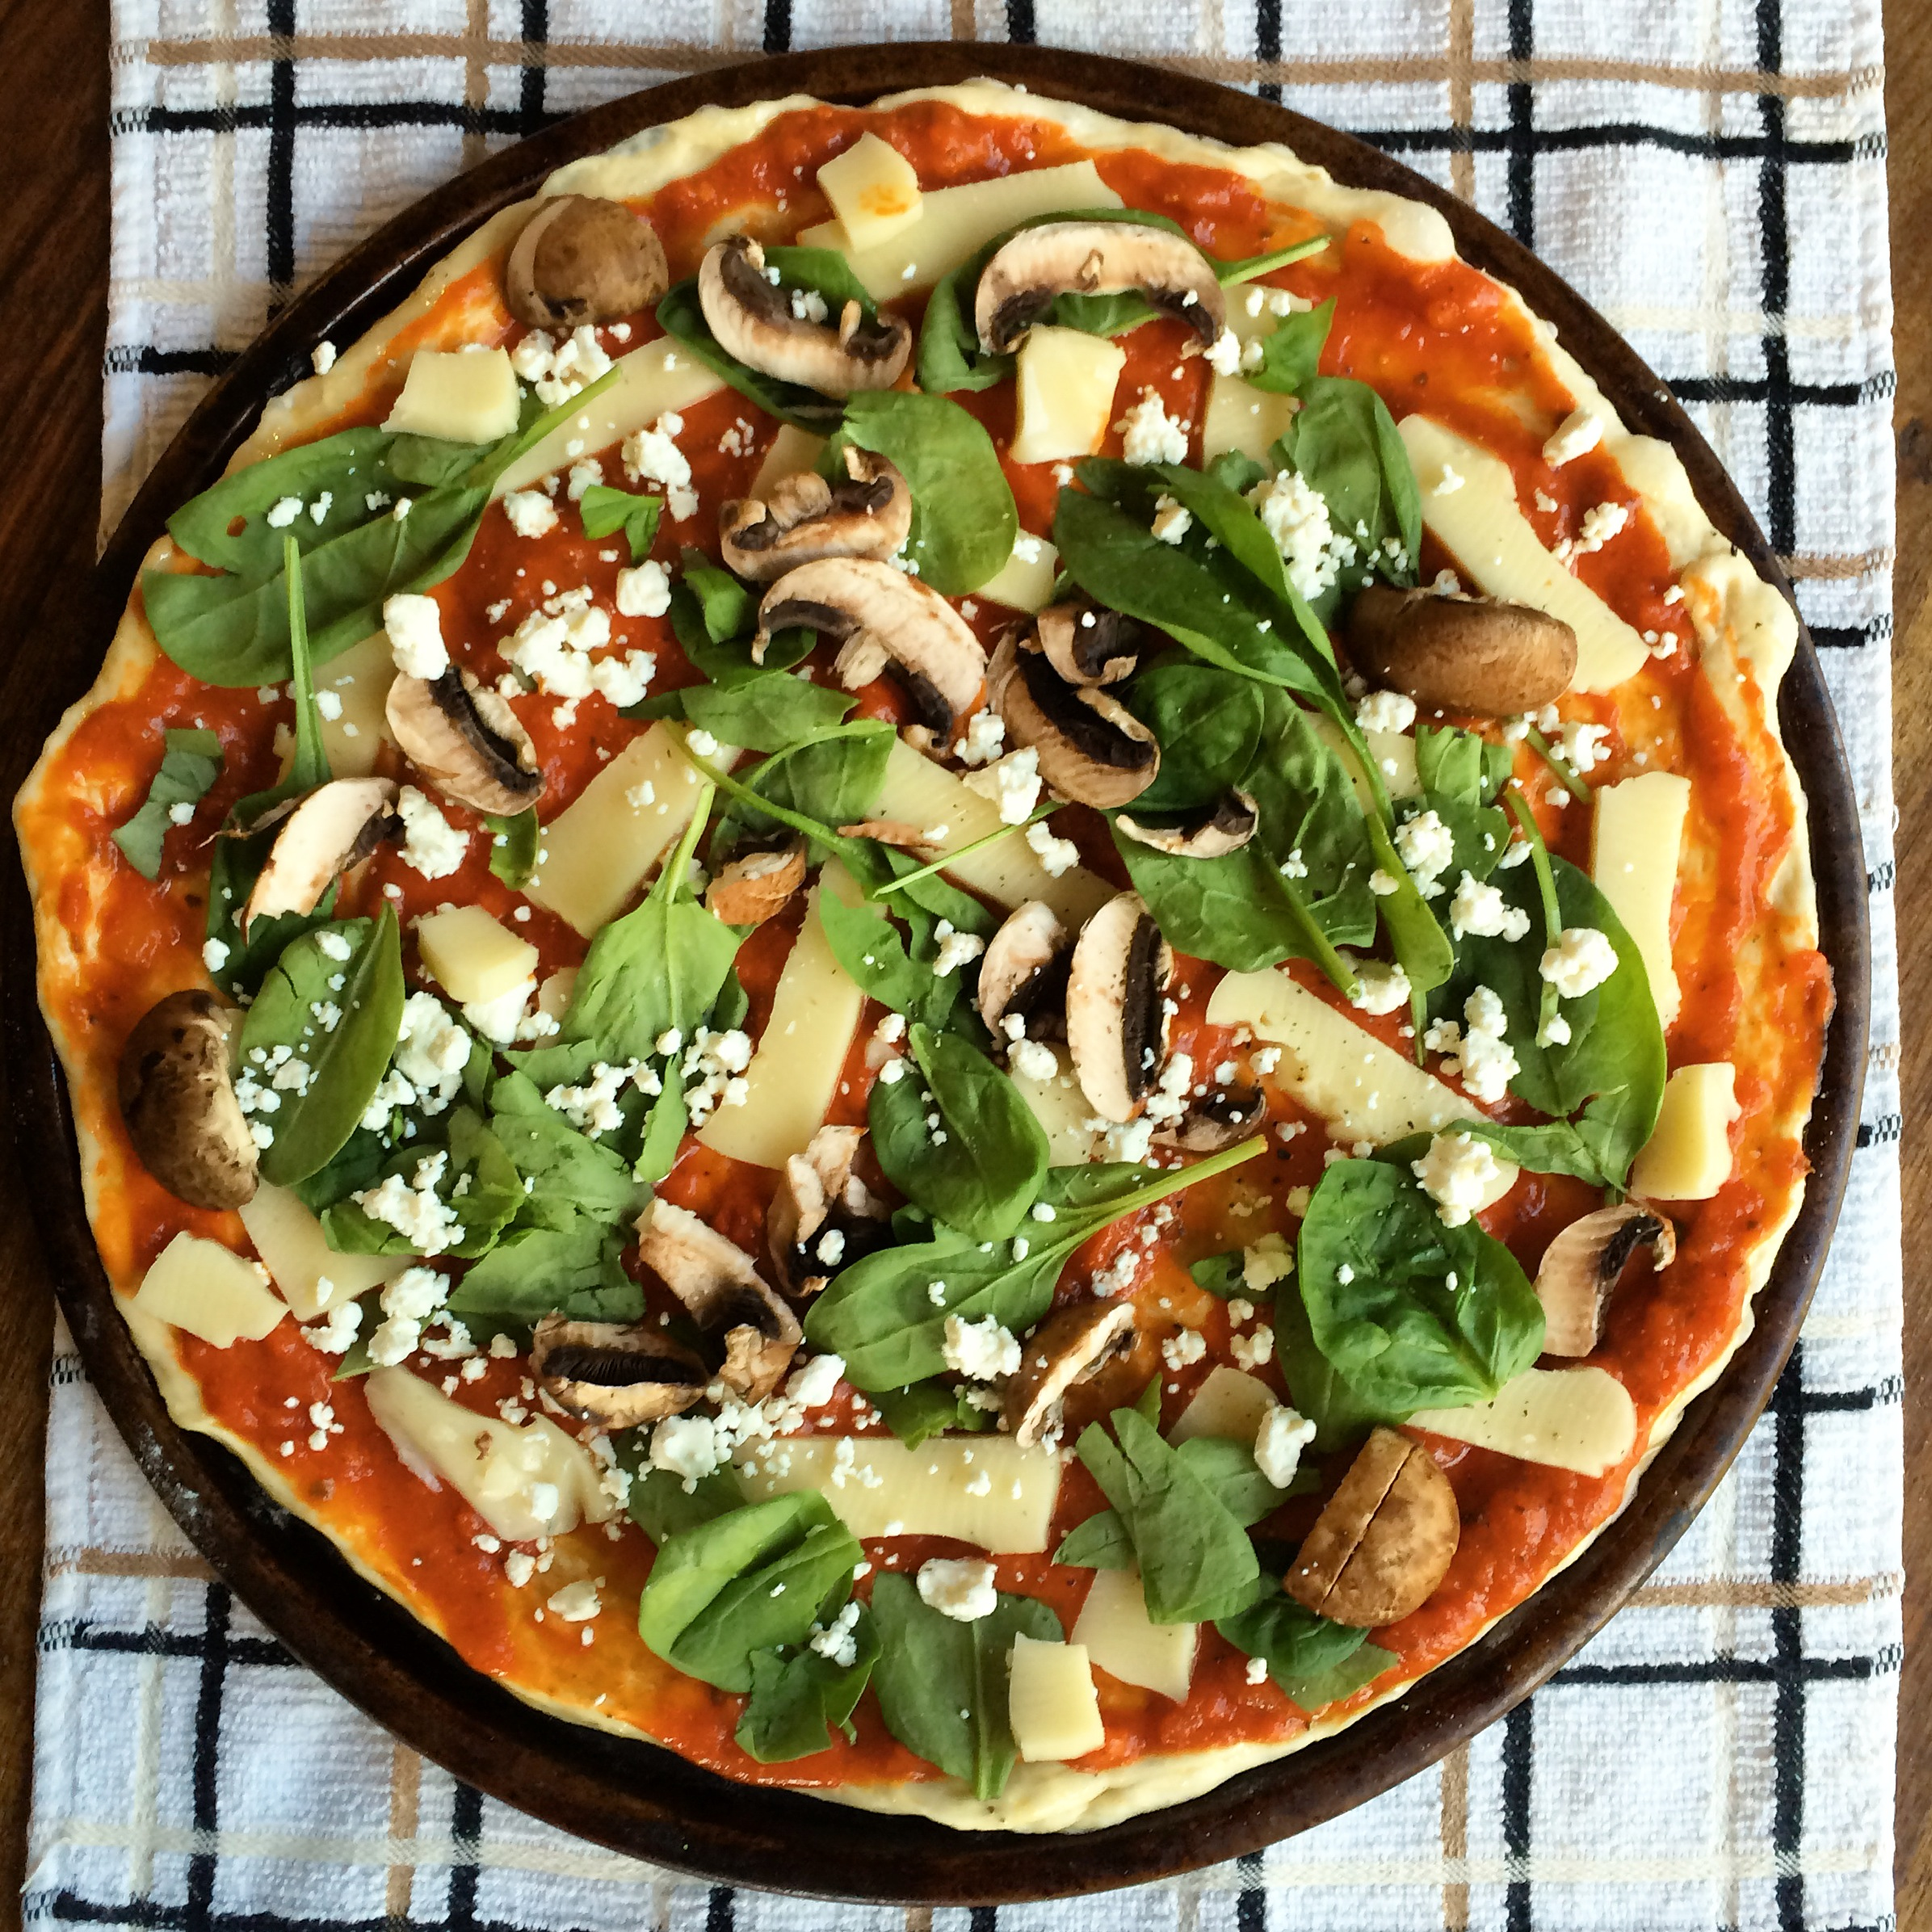 Make a Healthy Pizza. Spring and Chelsea